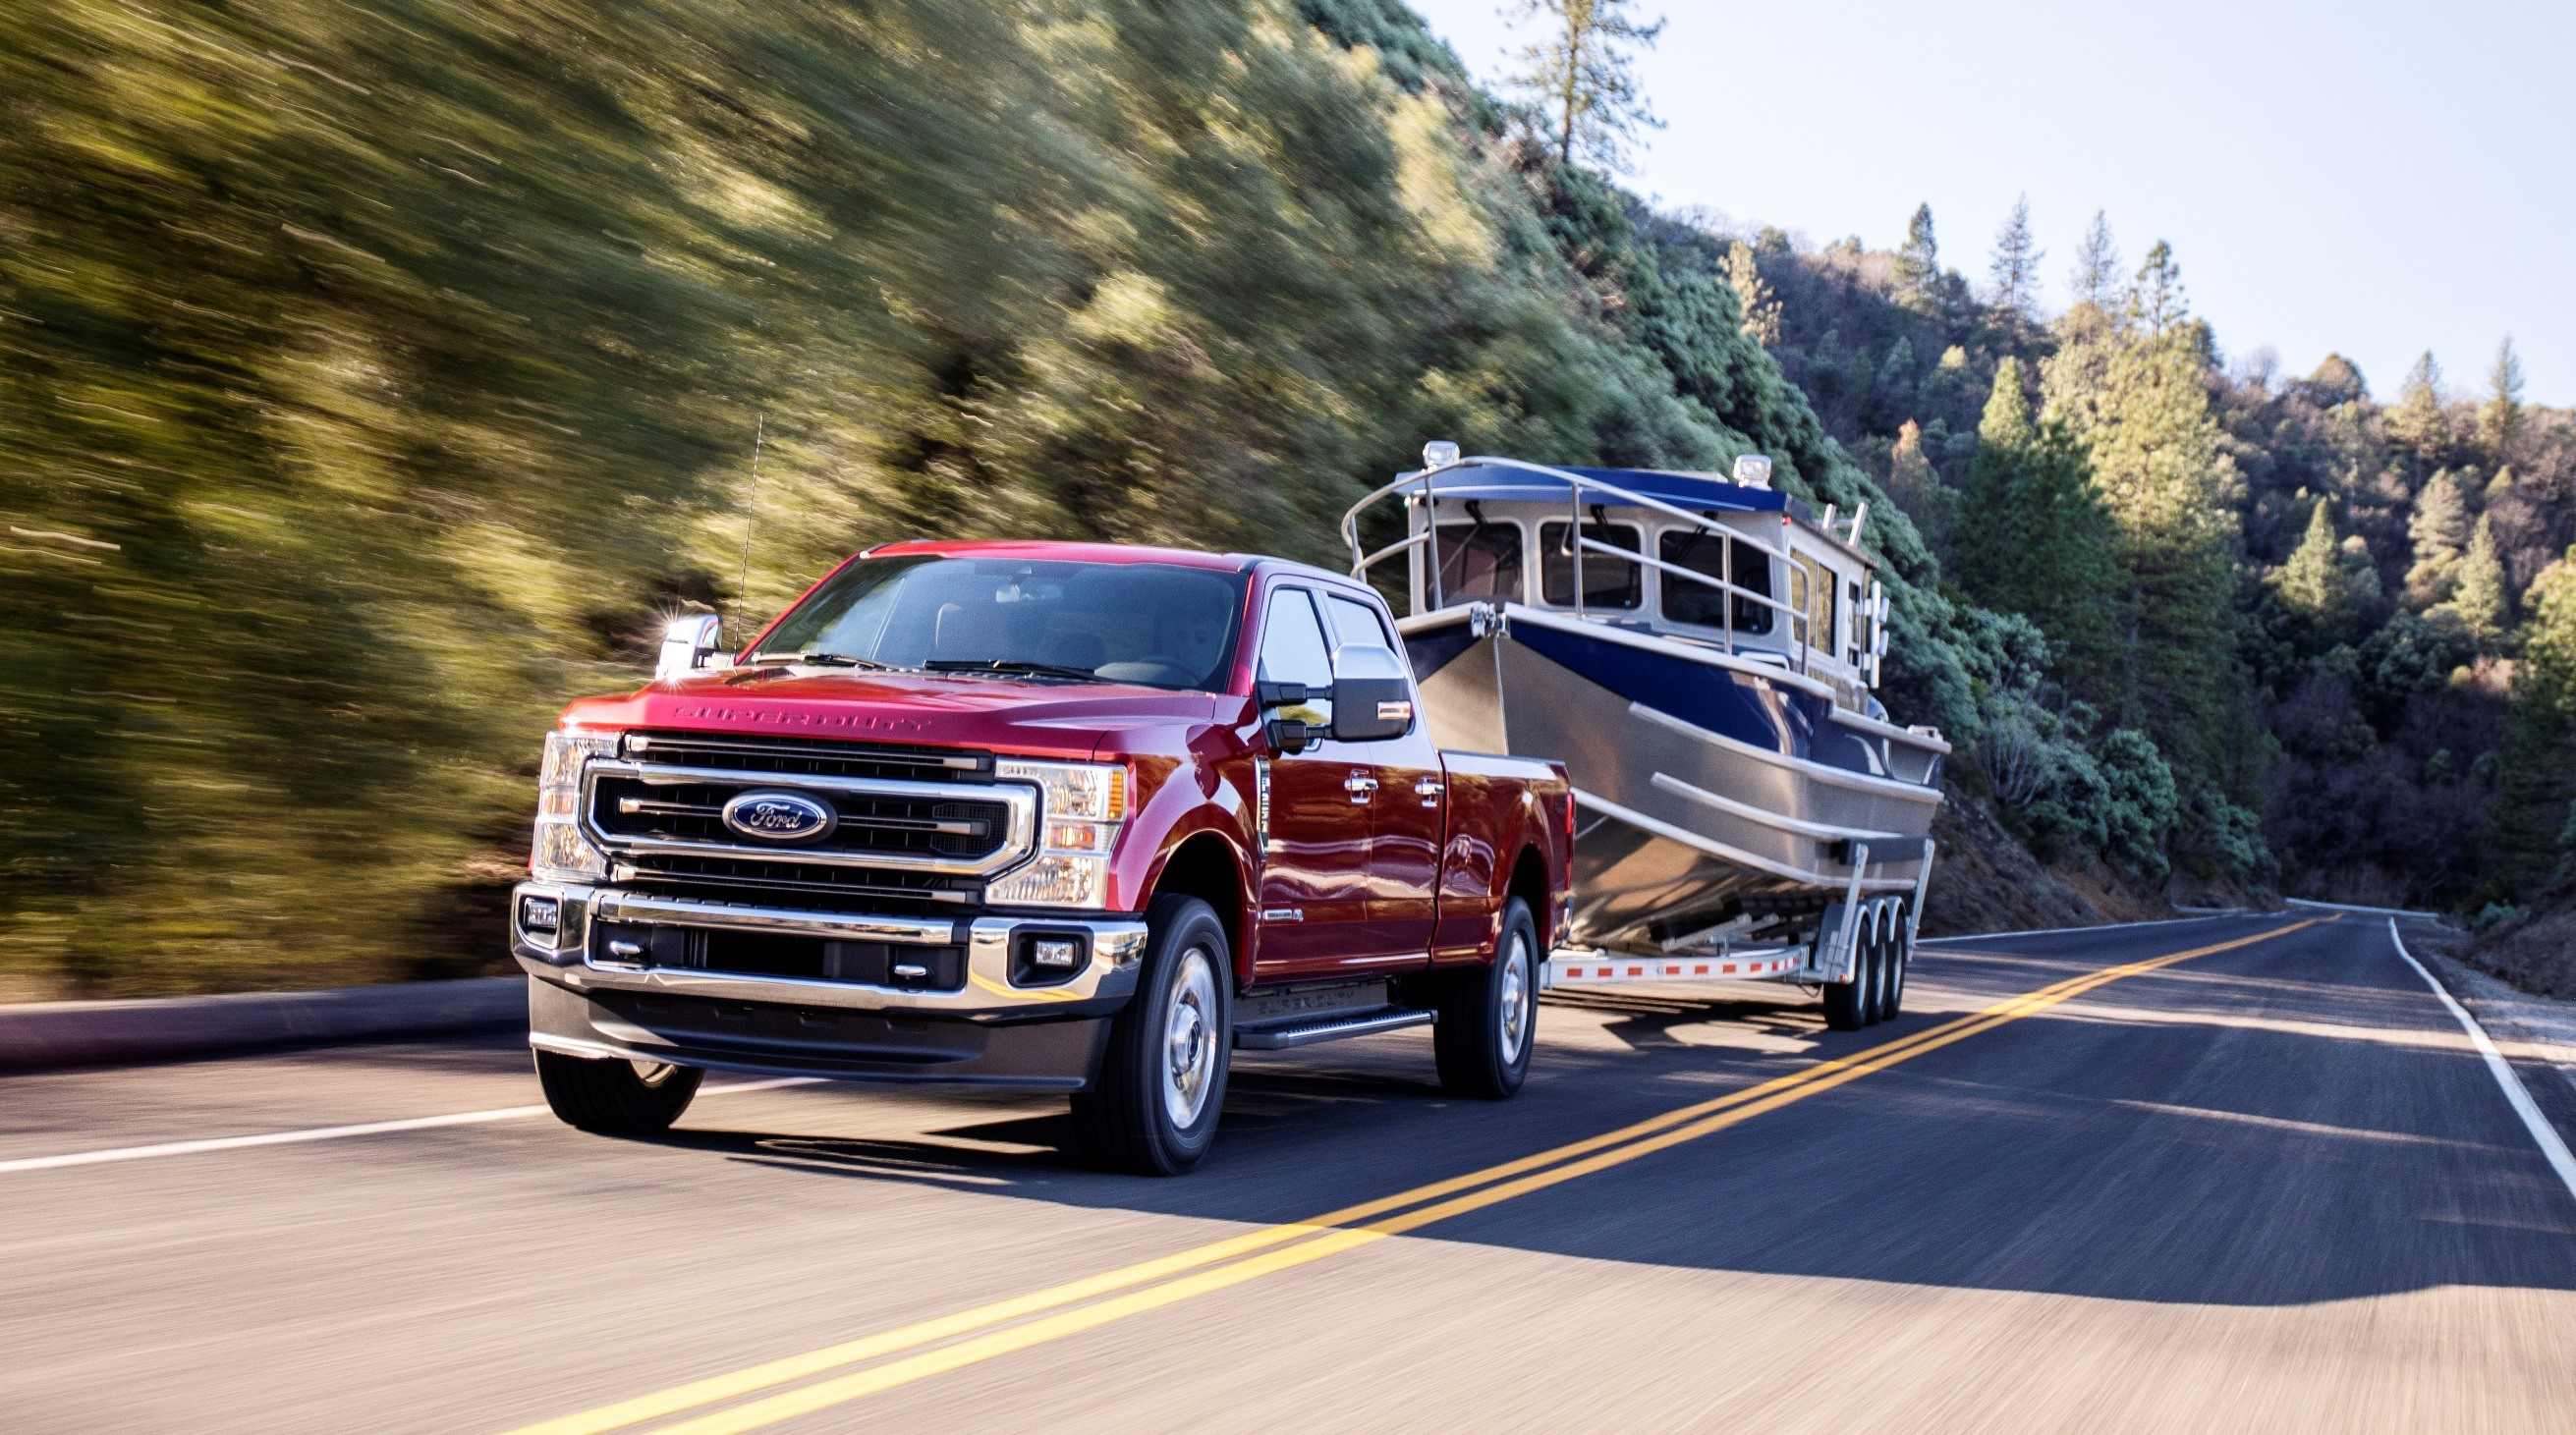 Ford 7.3 Diesel >> New 7.3L V8 Added To 2020 Ford F-Series Super Duty Lineup ...